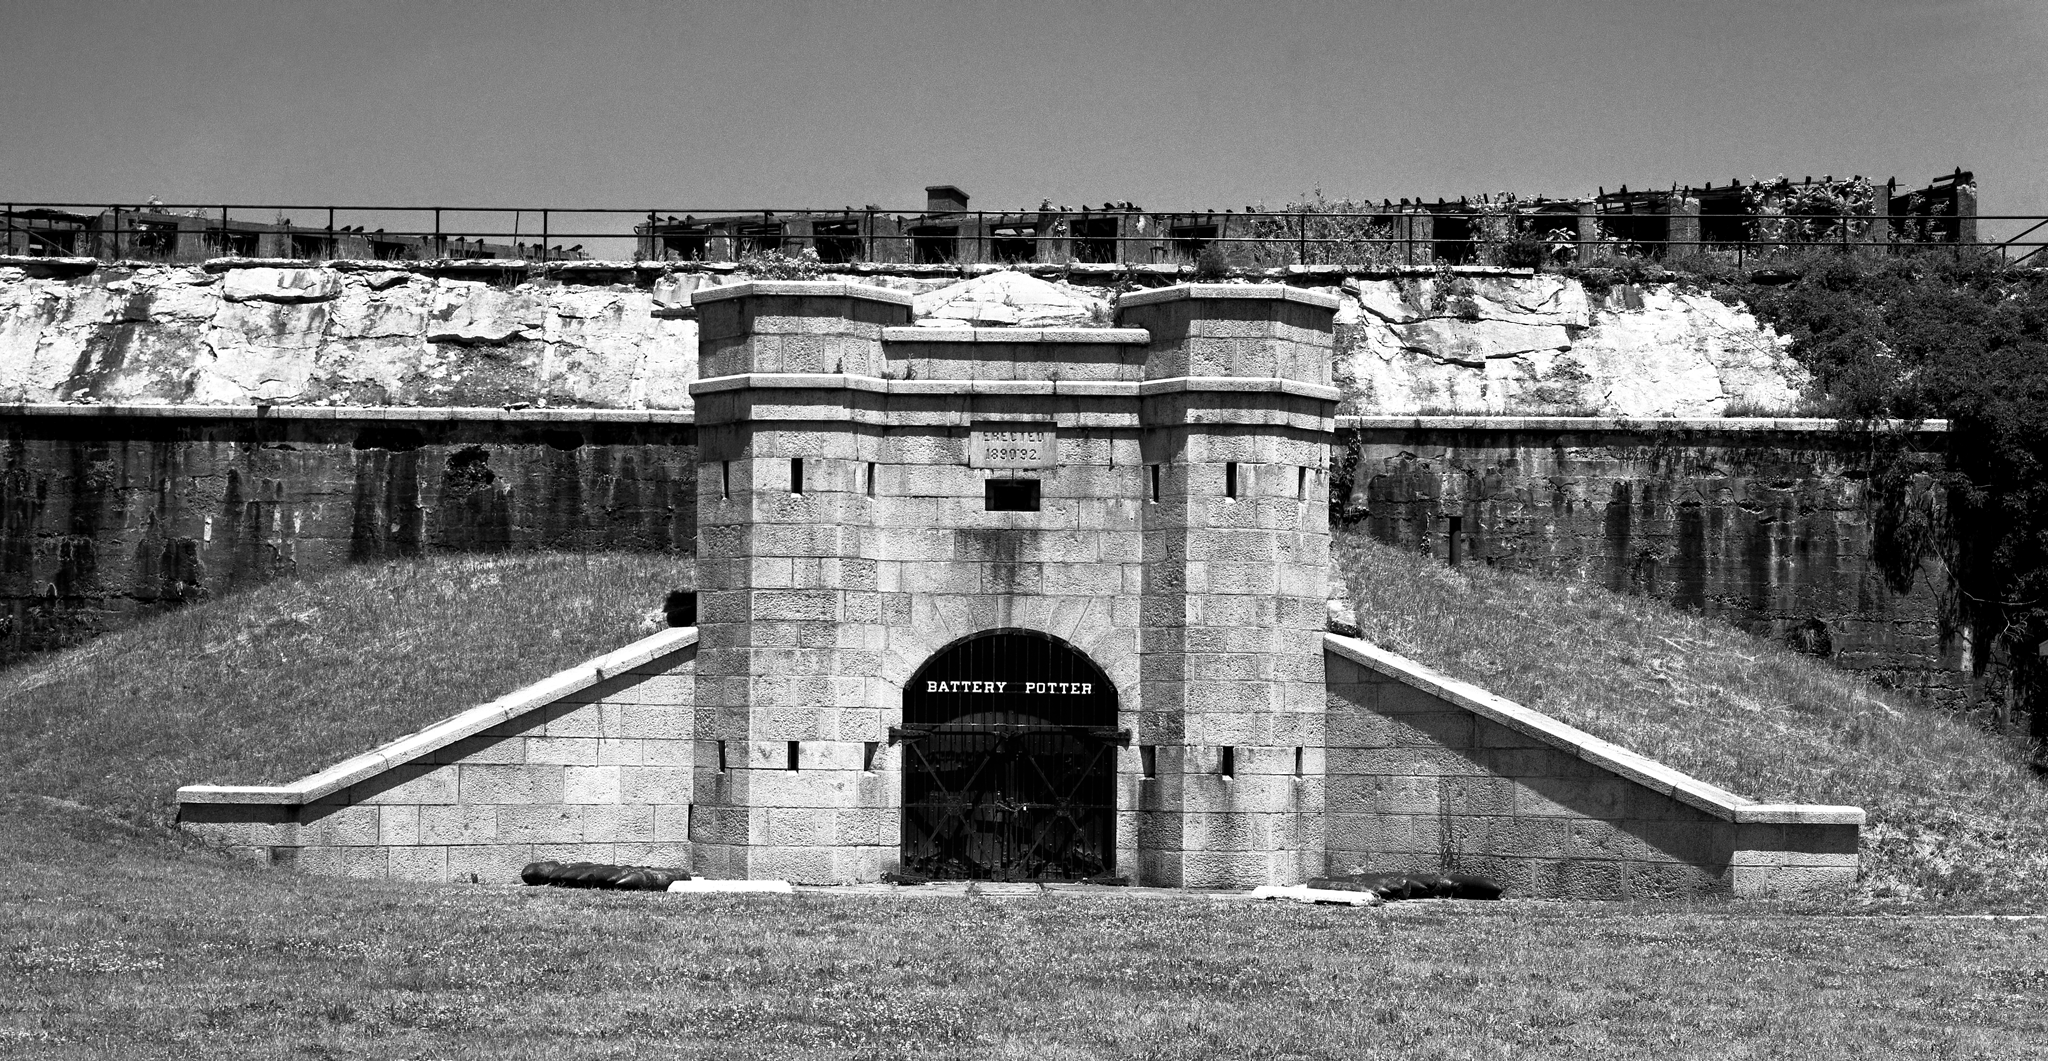 4x5_for_365_project_0177_Fort_Hancock_battery_potter.png